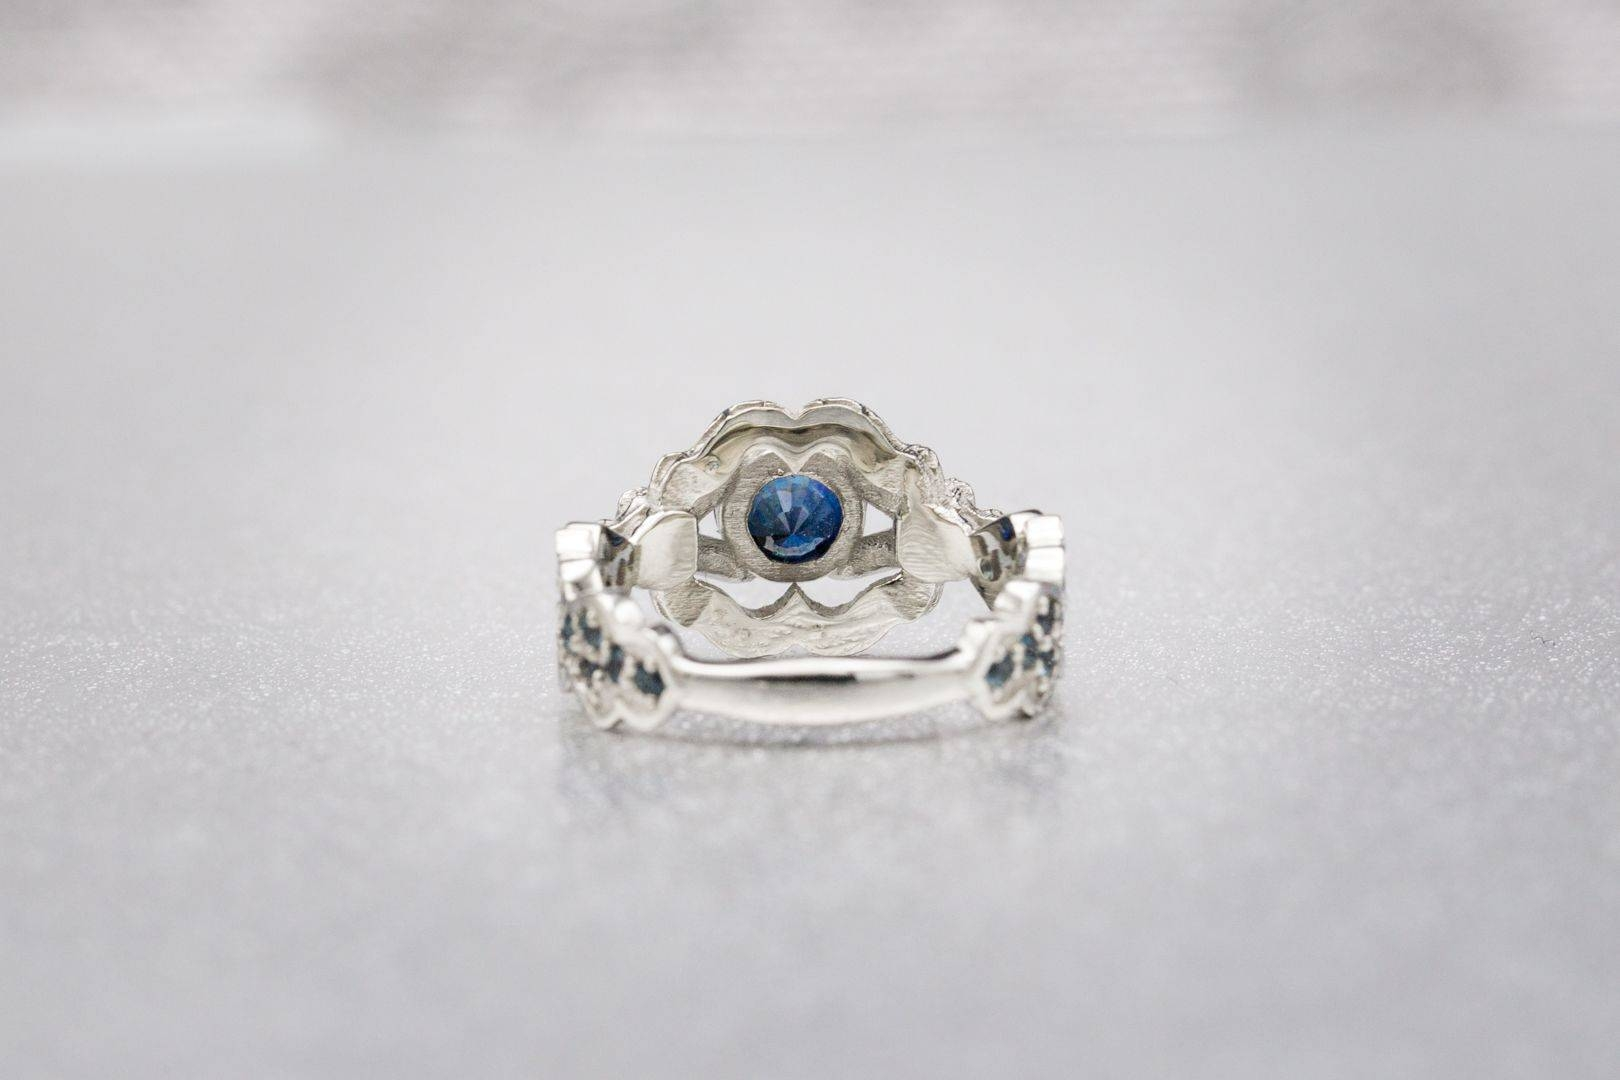 Wedding Rings : Build My Engagement Ring – Rings Jewelry Within Throughout Custom Build Engagement Rings (View 6 of 15)